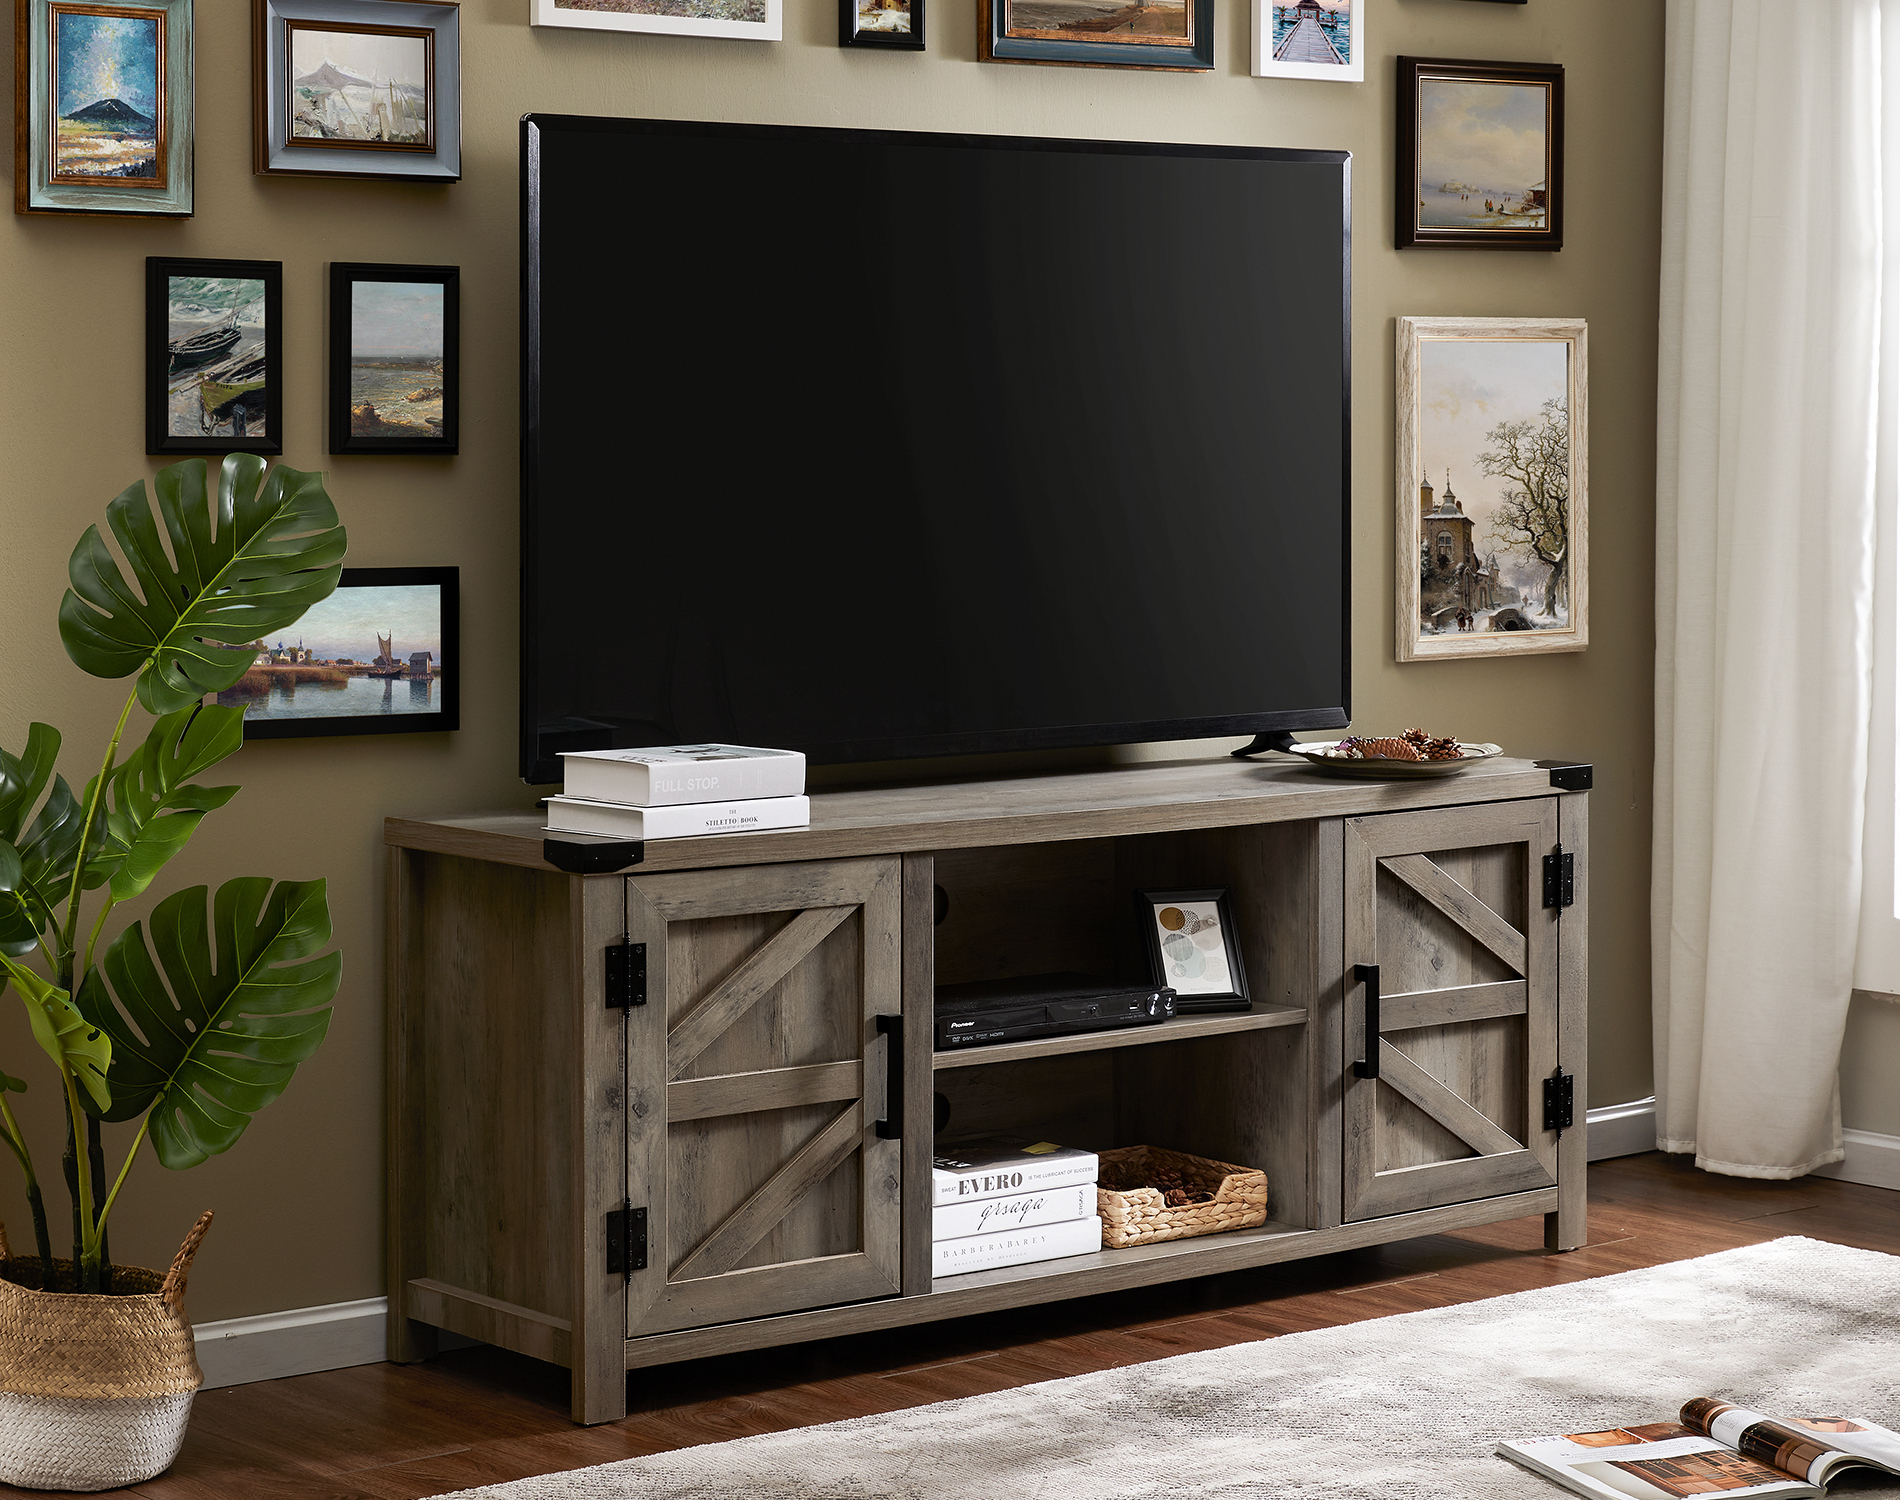 Fitueyes Farmhouse Barn Door Wood Tv Stands For 70 Inch With Regard To Corona Grey Flat Screen Tv Unit Stands (View 13 of 15)